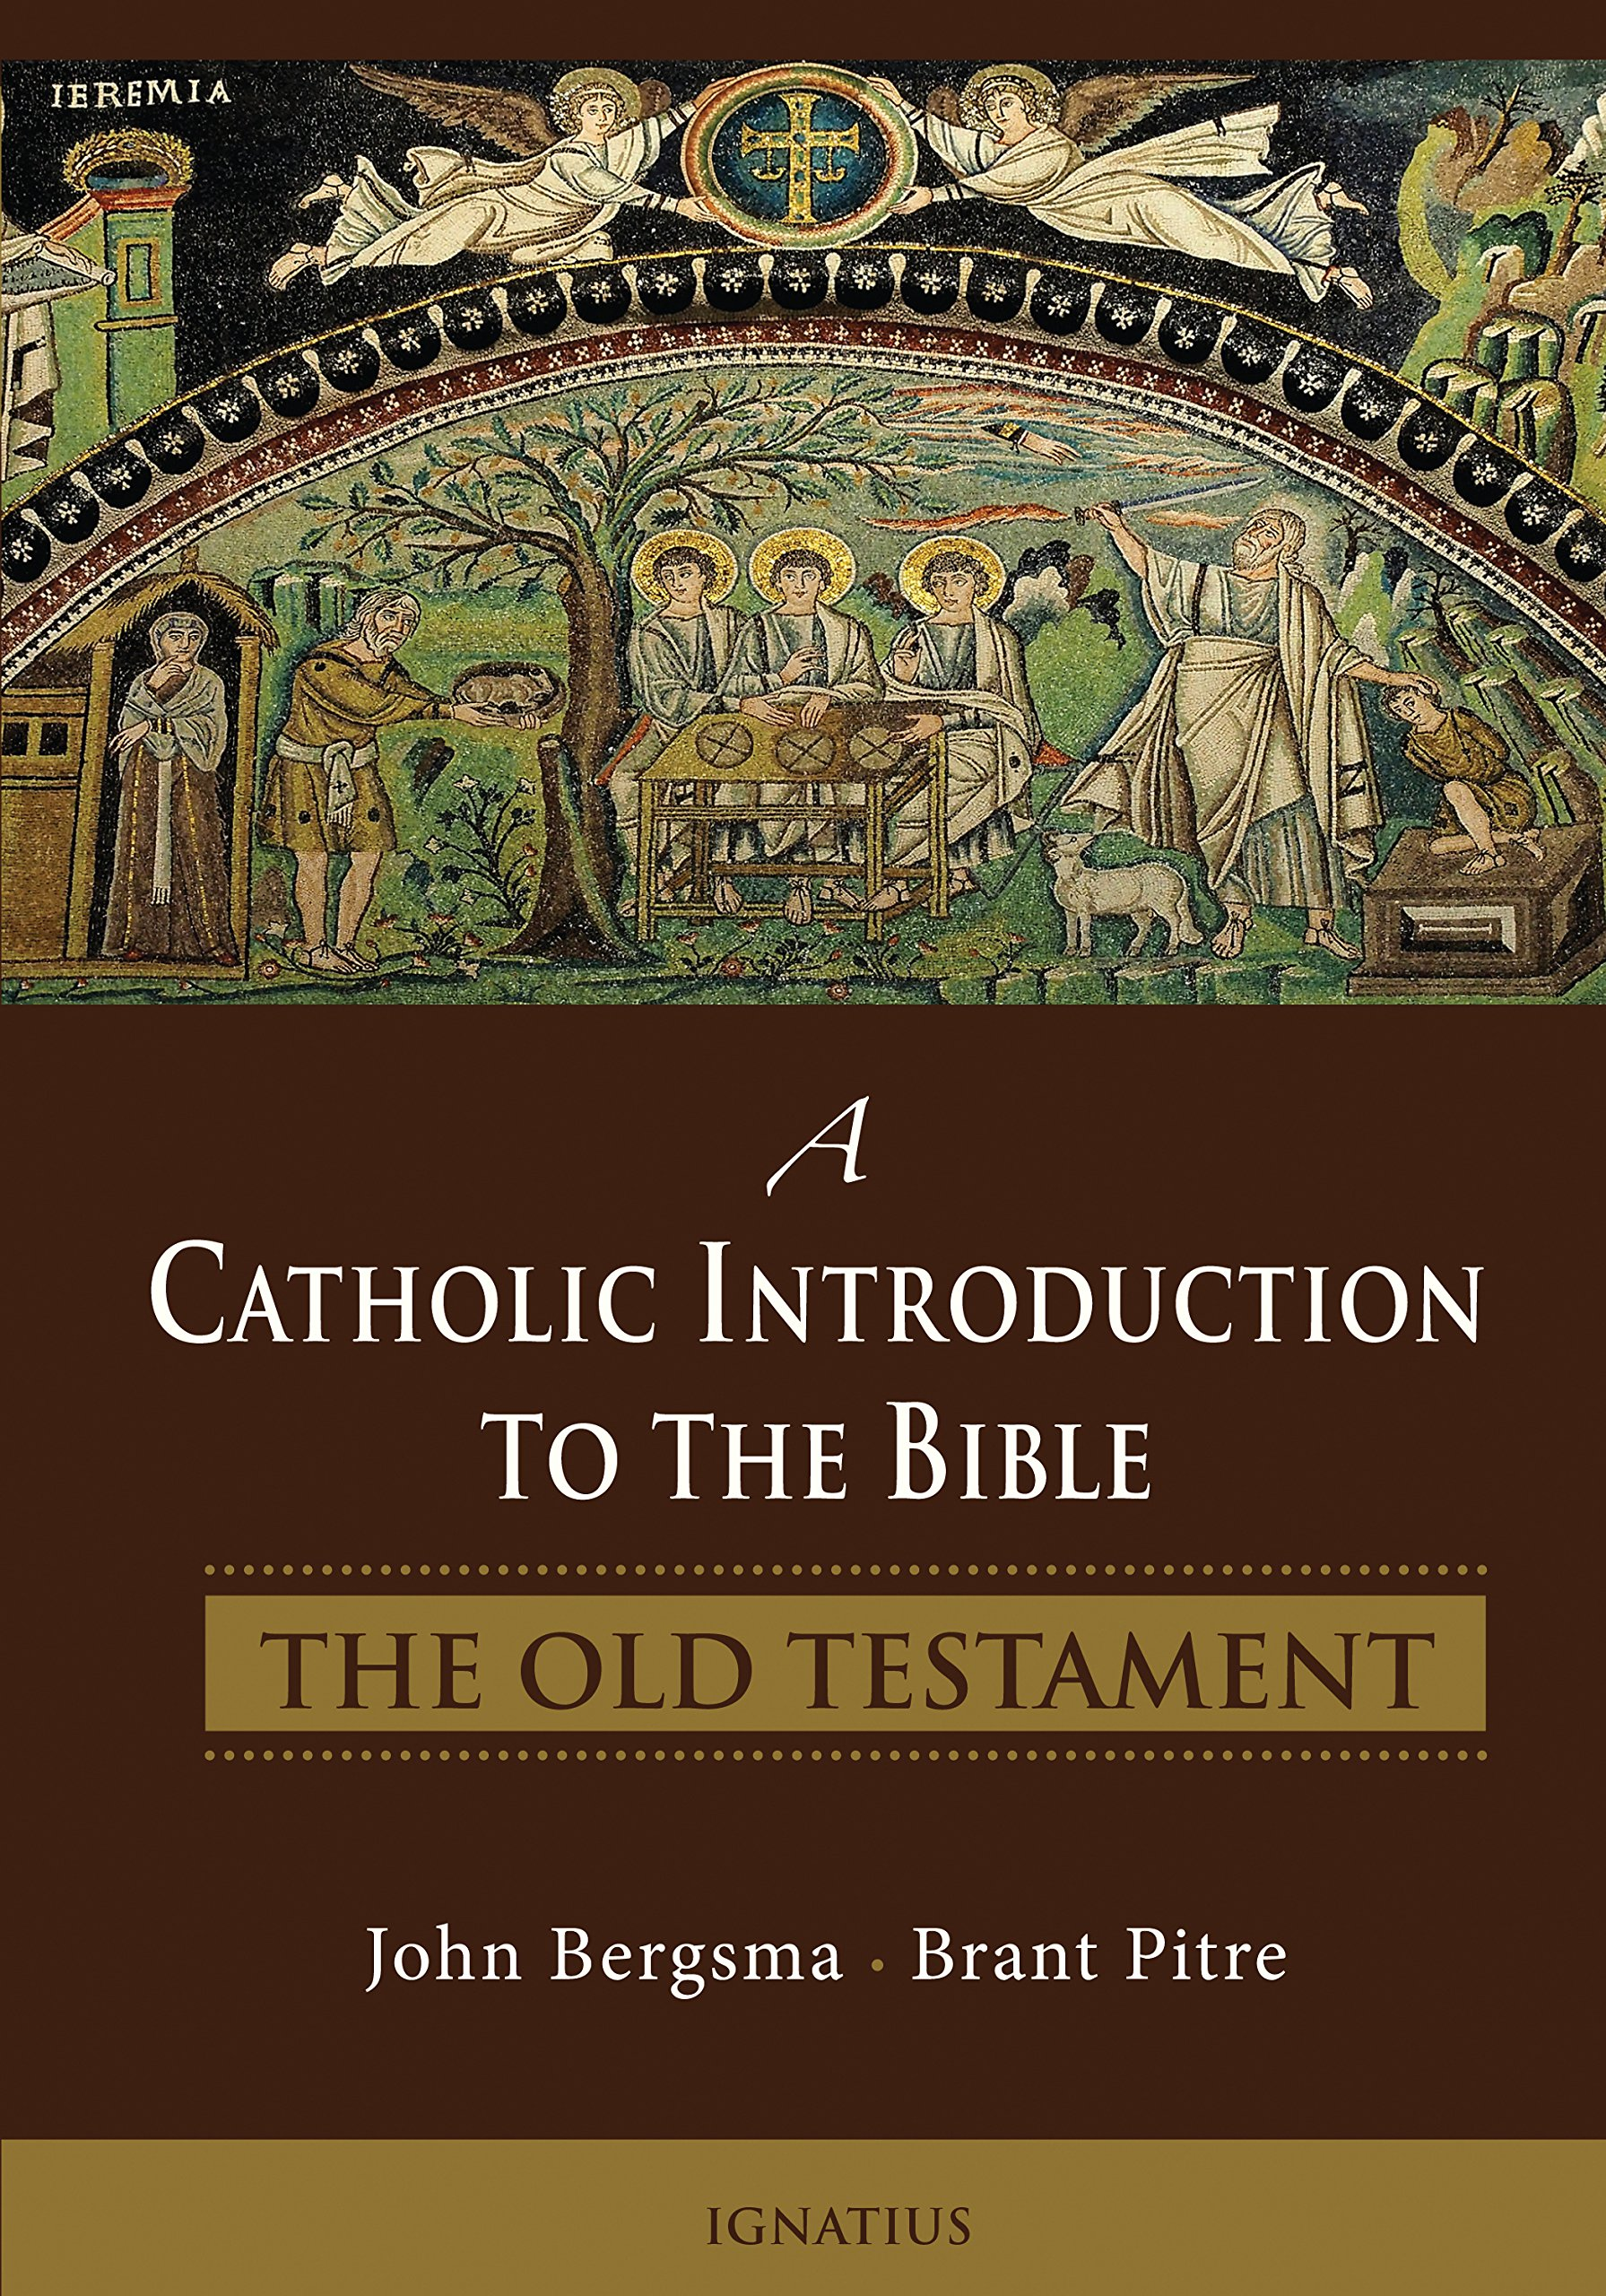 Kuvahaun tulos haulle A Catholic Introduction to the Bible: The Old Testament